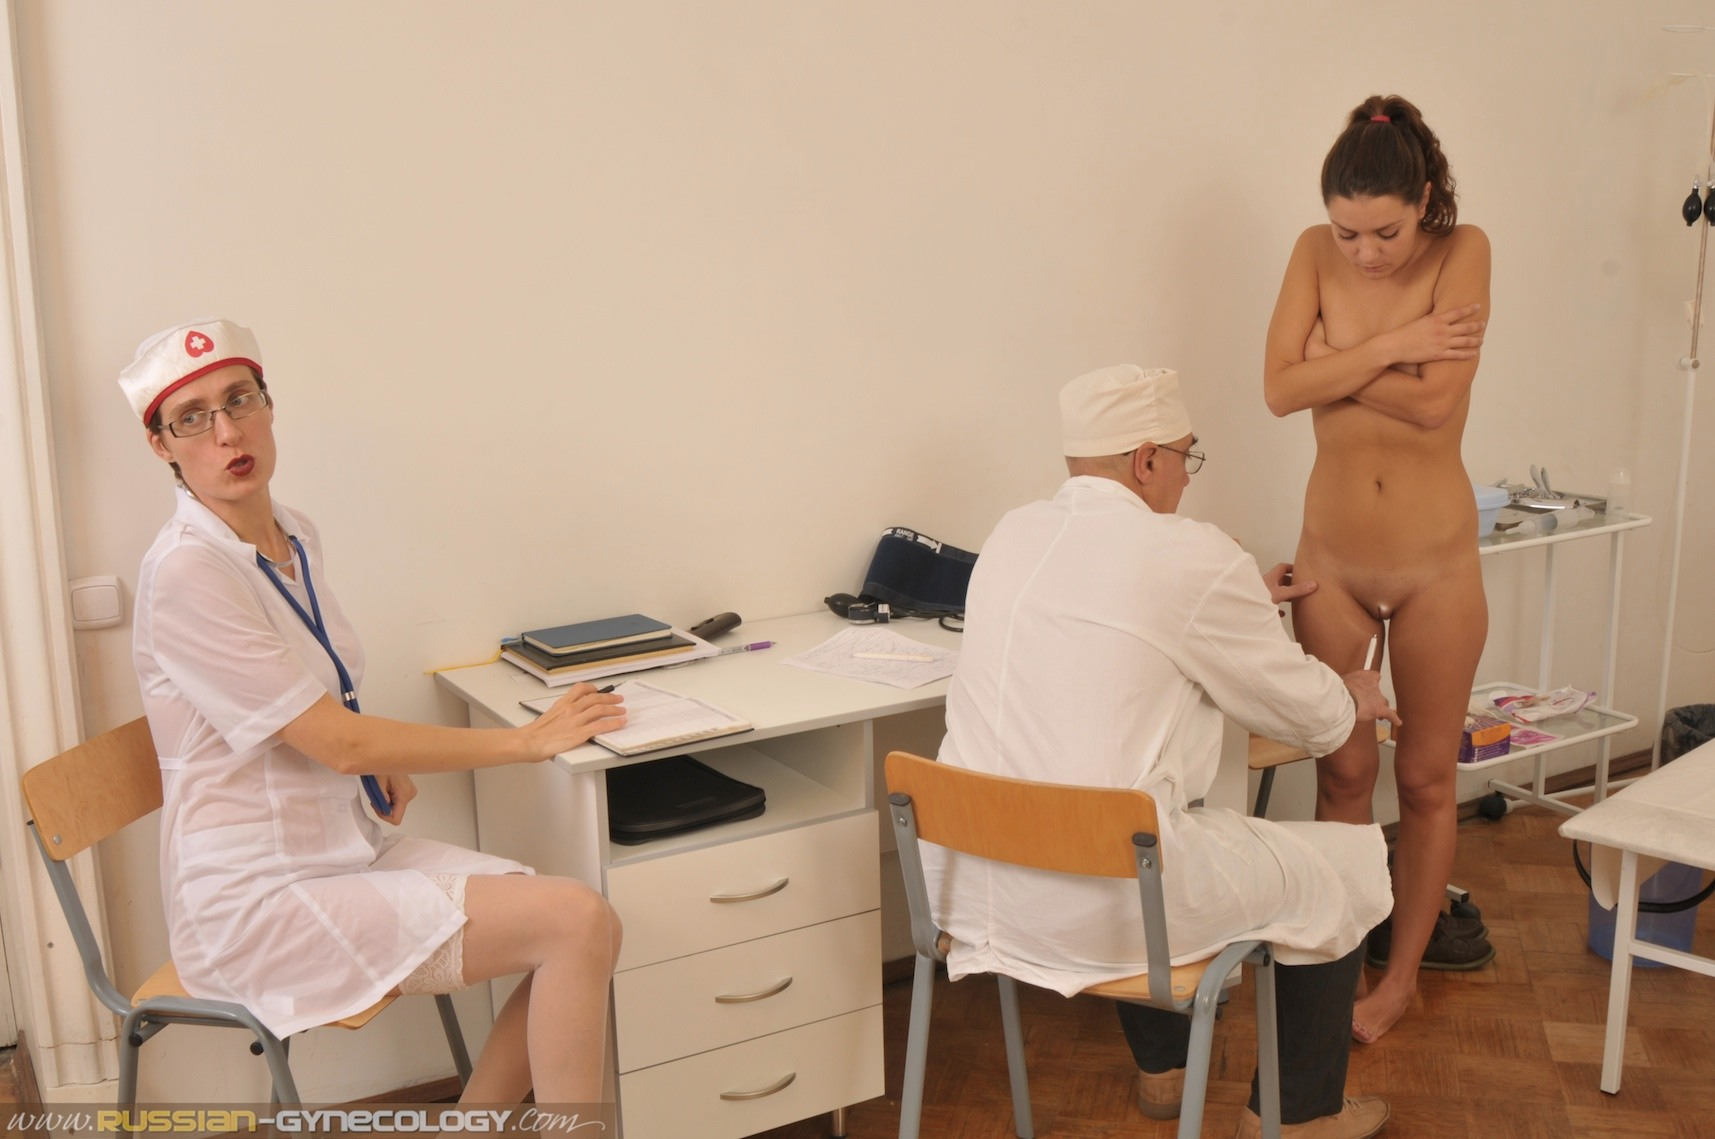 russian gynecology site hg galleries 005 photo08